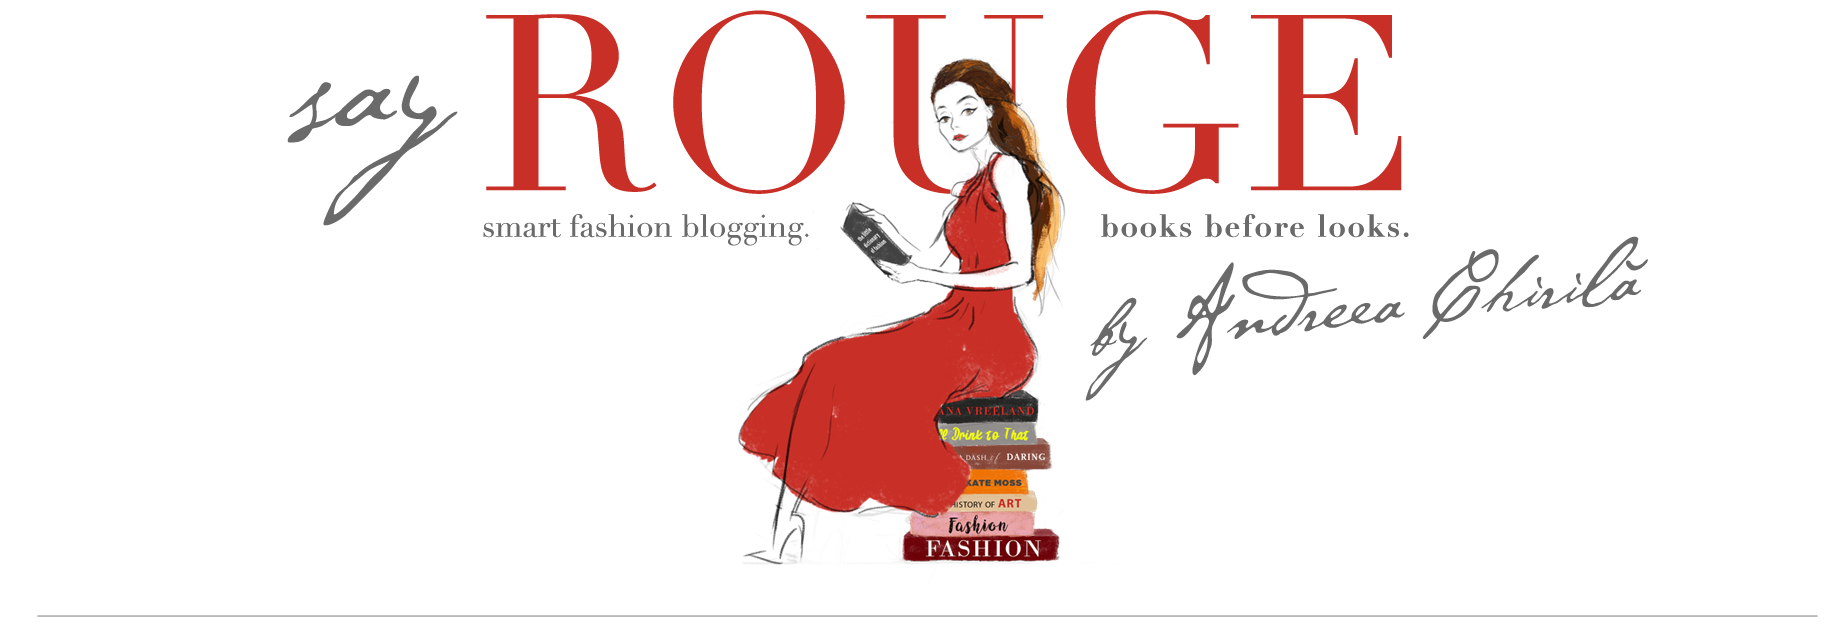 Say Rouge by Andreea Chirila